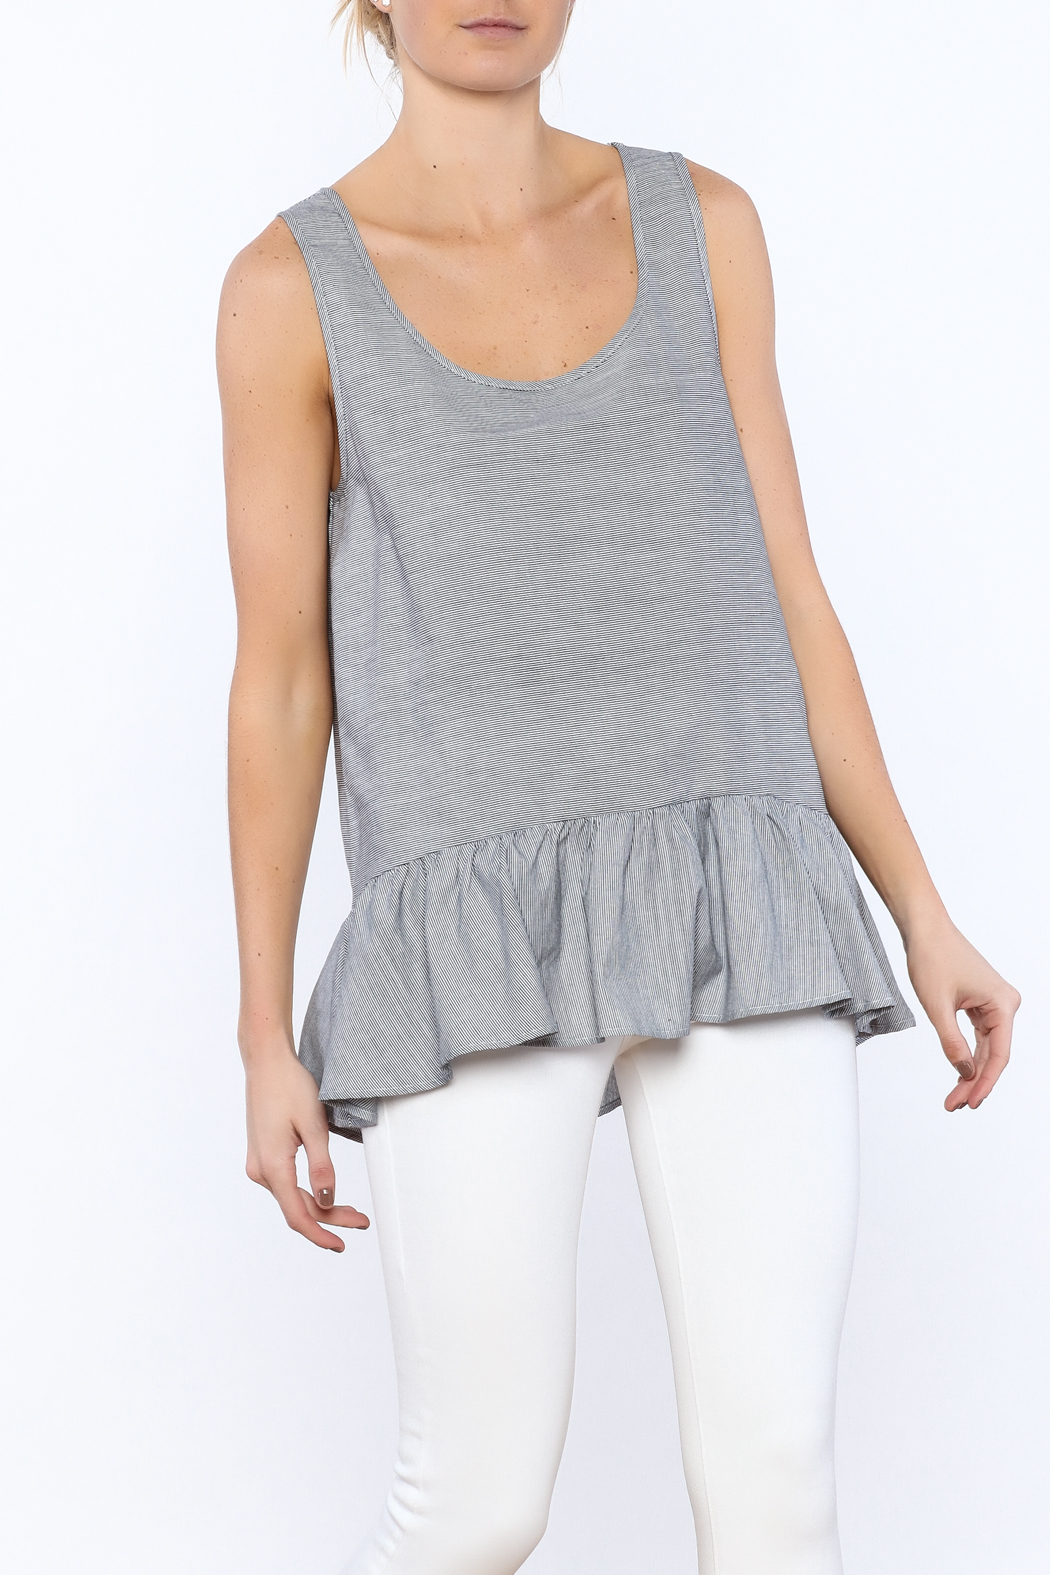 Zoa Grey Sleeveless Top - Front Cropped Image